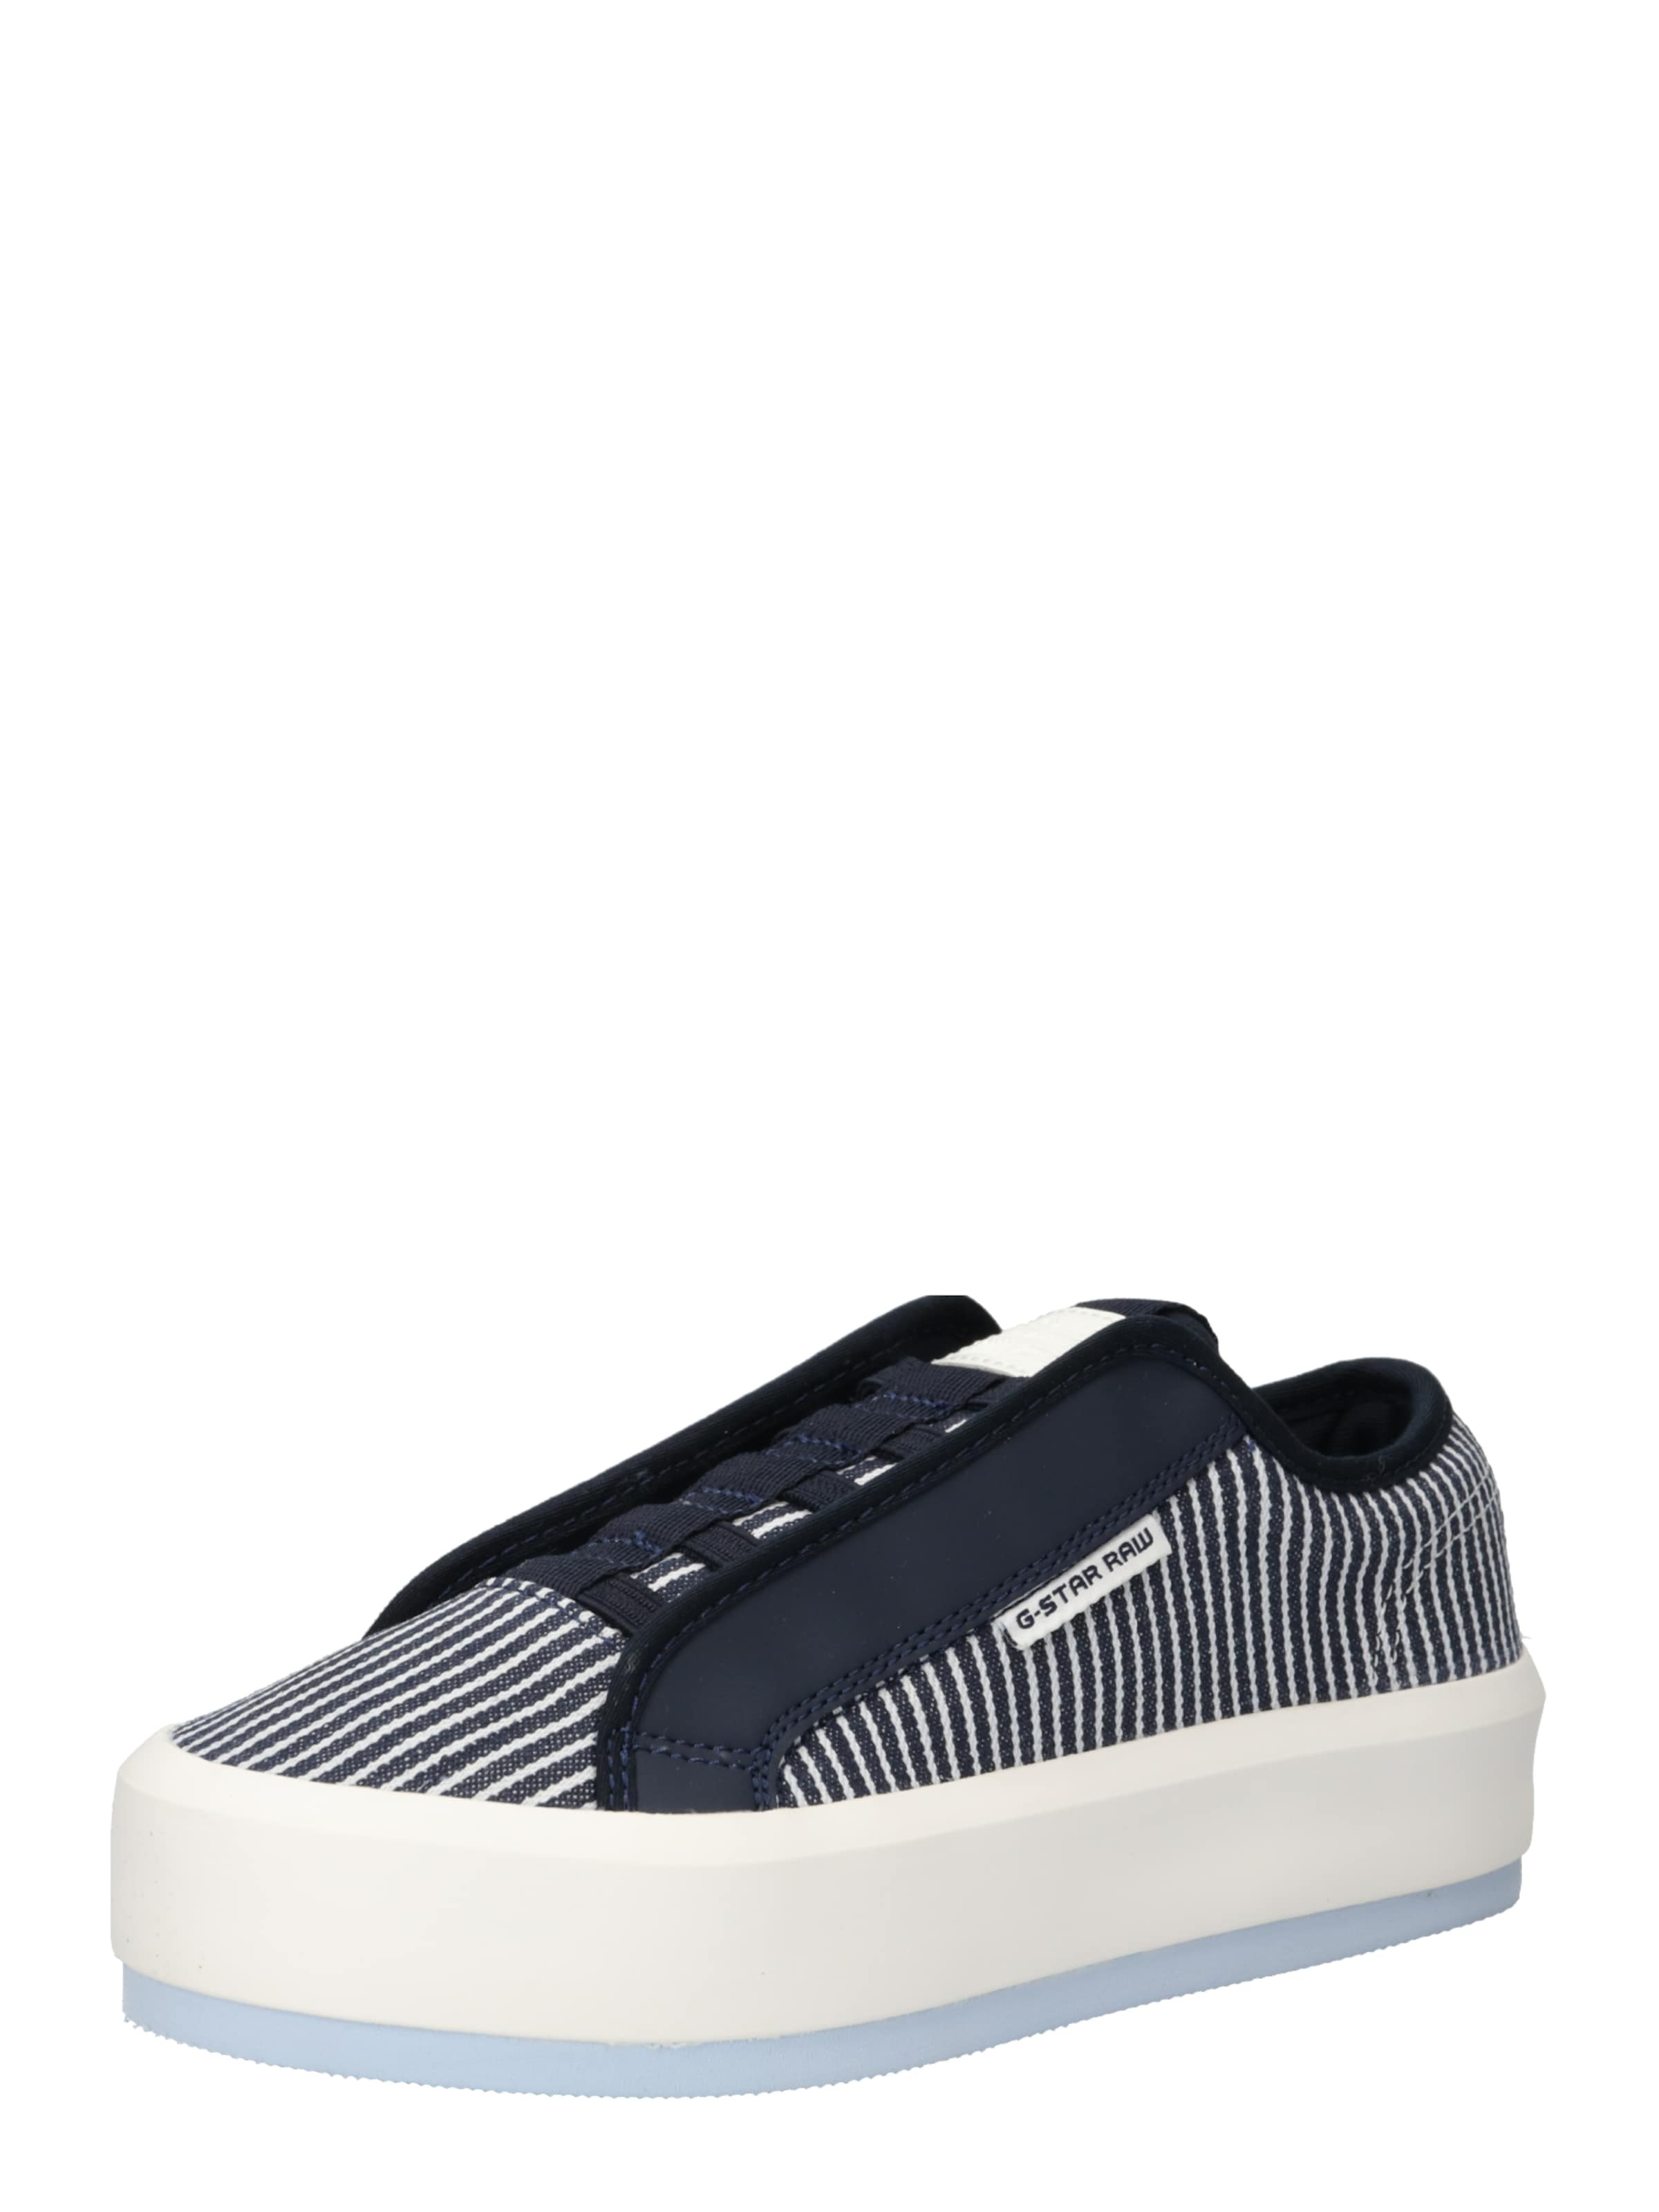 Sneaker G Up' star Raw Lace In 'strett DunkelblauOffwhite H9DIWeE2Y